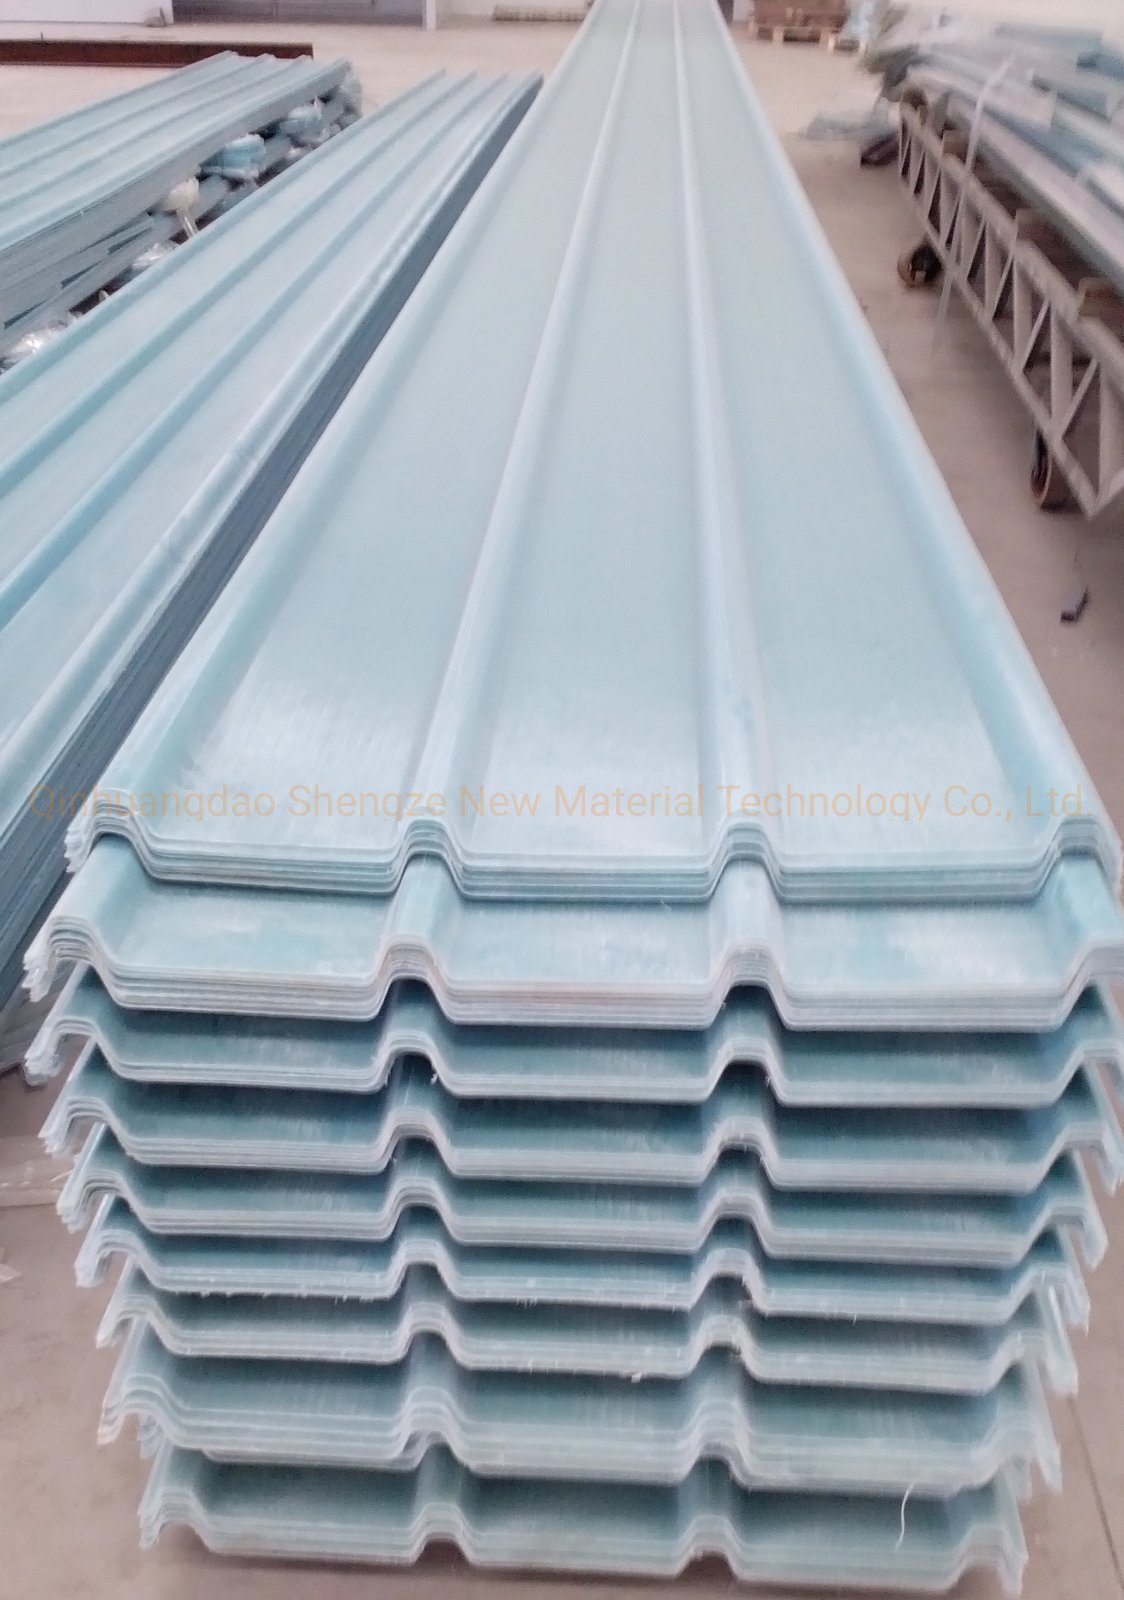 China Factory Customization Translucent Fiberglass Roof Panels For Greenhouse Photos Pictures Made In China Com